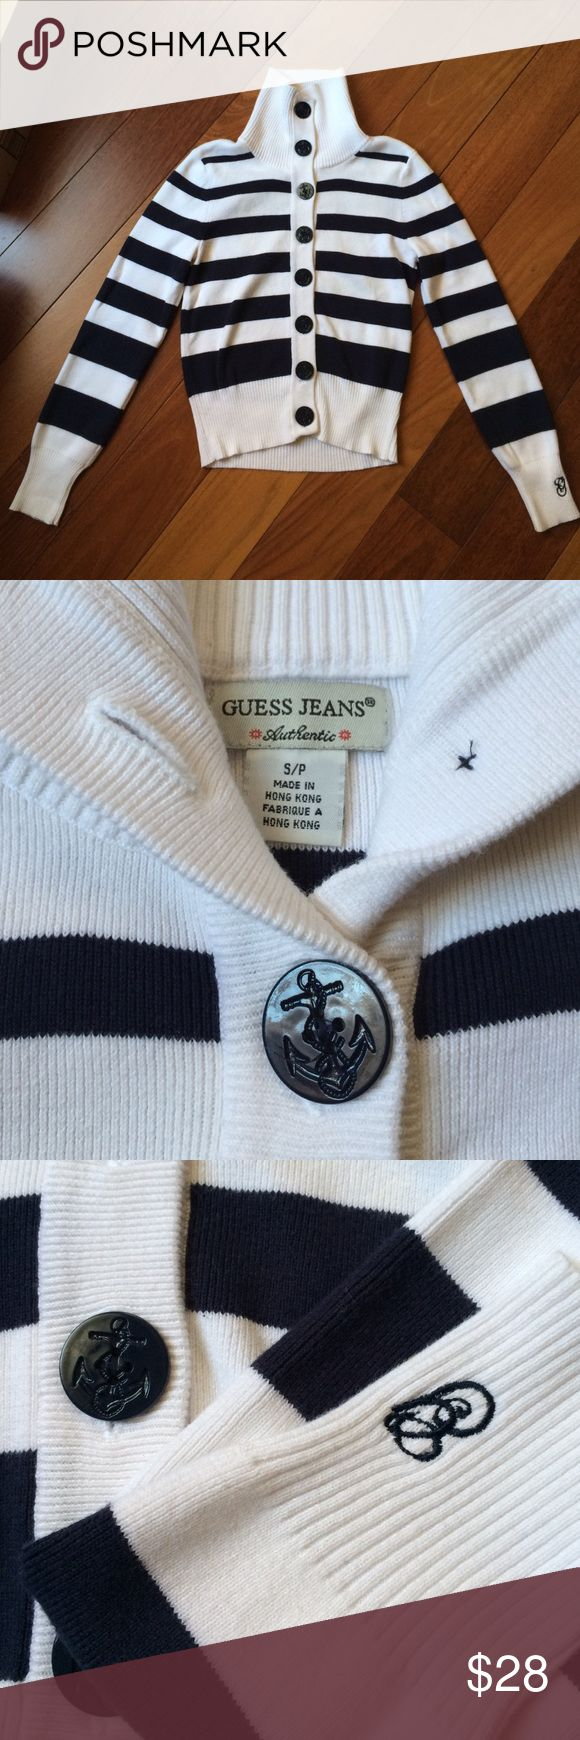 Brand New WOT Guess Nautical Cardigan Tag says S. Looks like it runs a little small but meant to stretch. Thick, stretchy finely ribbed cotton. Awesome button detail. All the way up to turtleneck height. Never worn or tried no flaws anywhere Guess Sweaters Cardigans